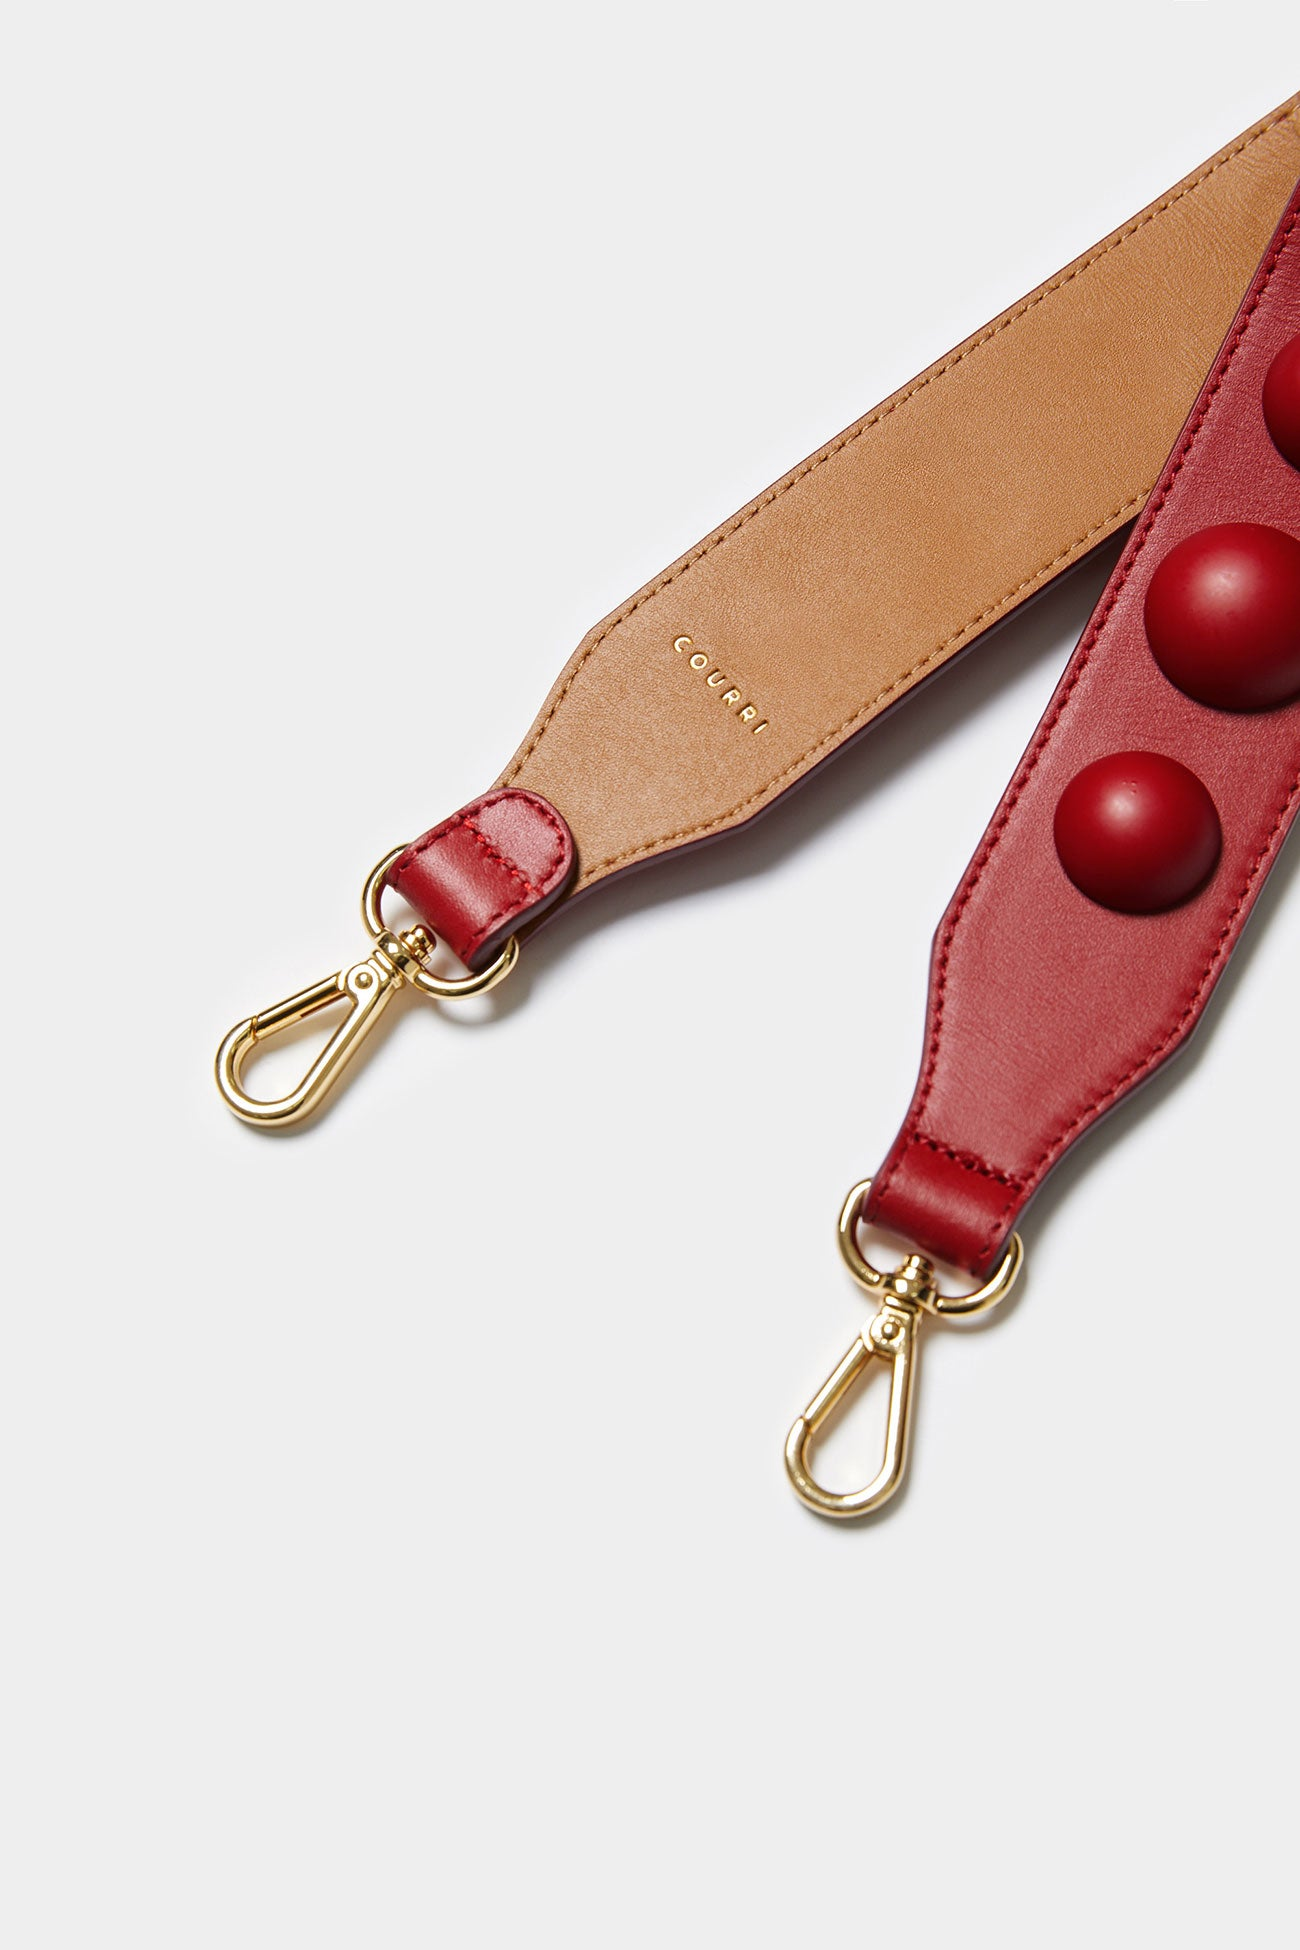 RED CODIE EMBELLISHED LEATHER STRAP [Short]